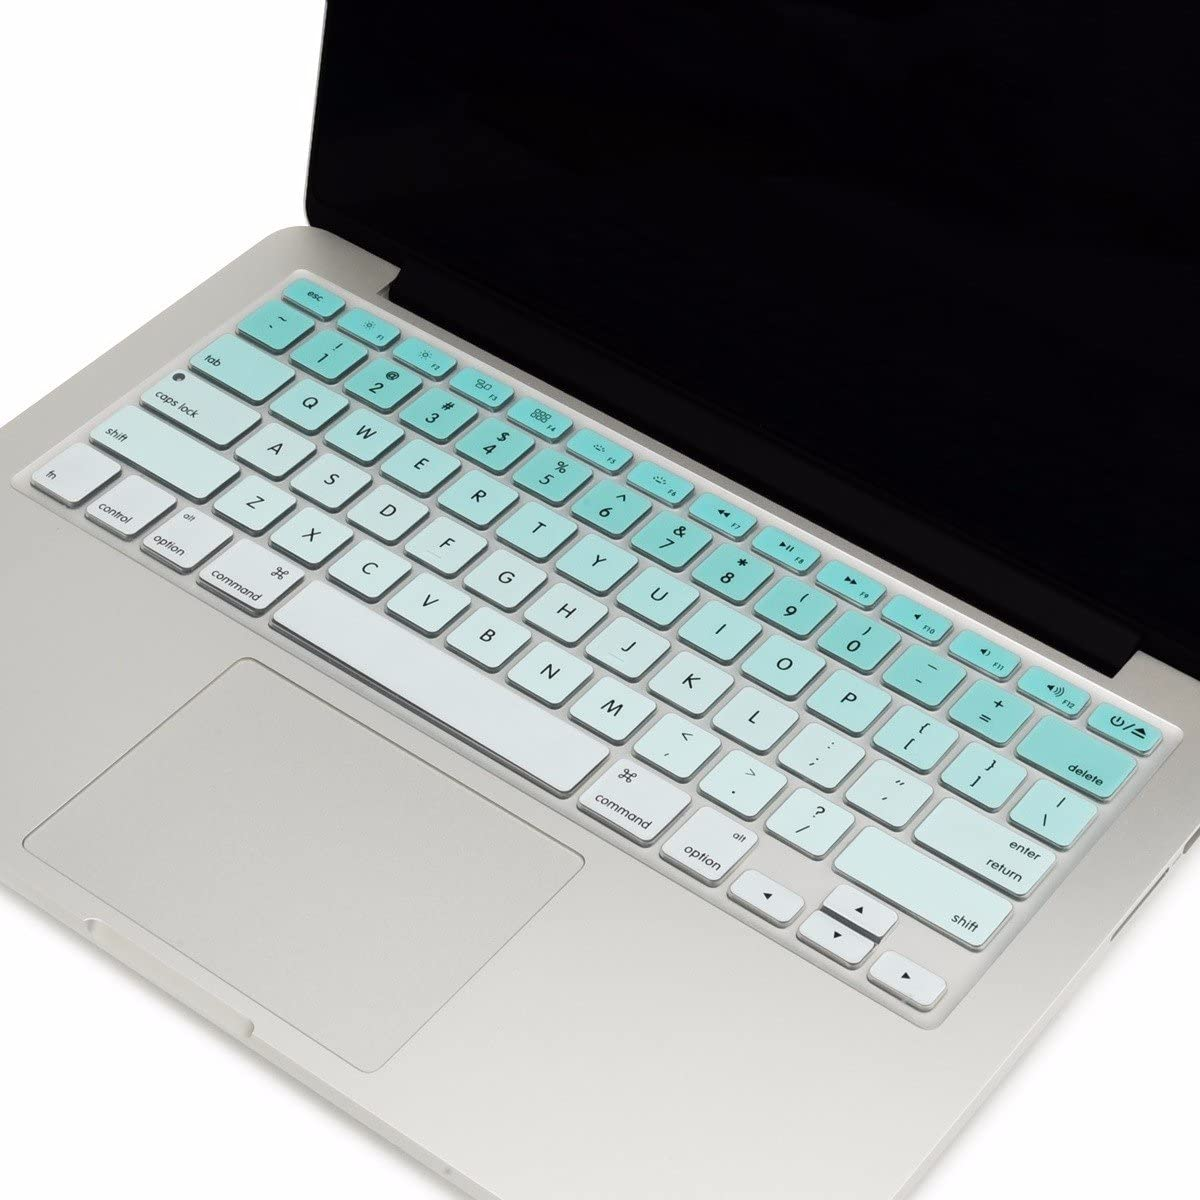 "TOP CASE - Faded Ombre Series Keyboard Cover Skin Compatible with MacBook 13"" Unibody/Old Generation MacBook Pro 13"" 15"" 17""/MacBook Air 13""/Wireless Keyboard - Ombre Aqua Blue &White"